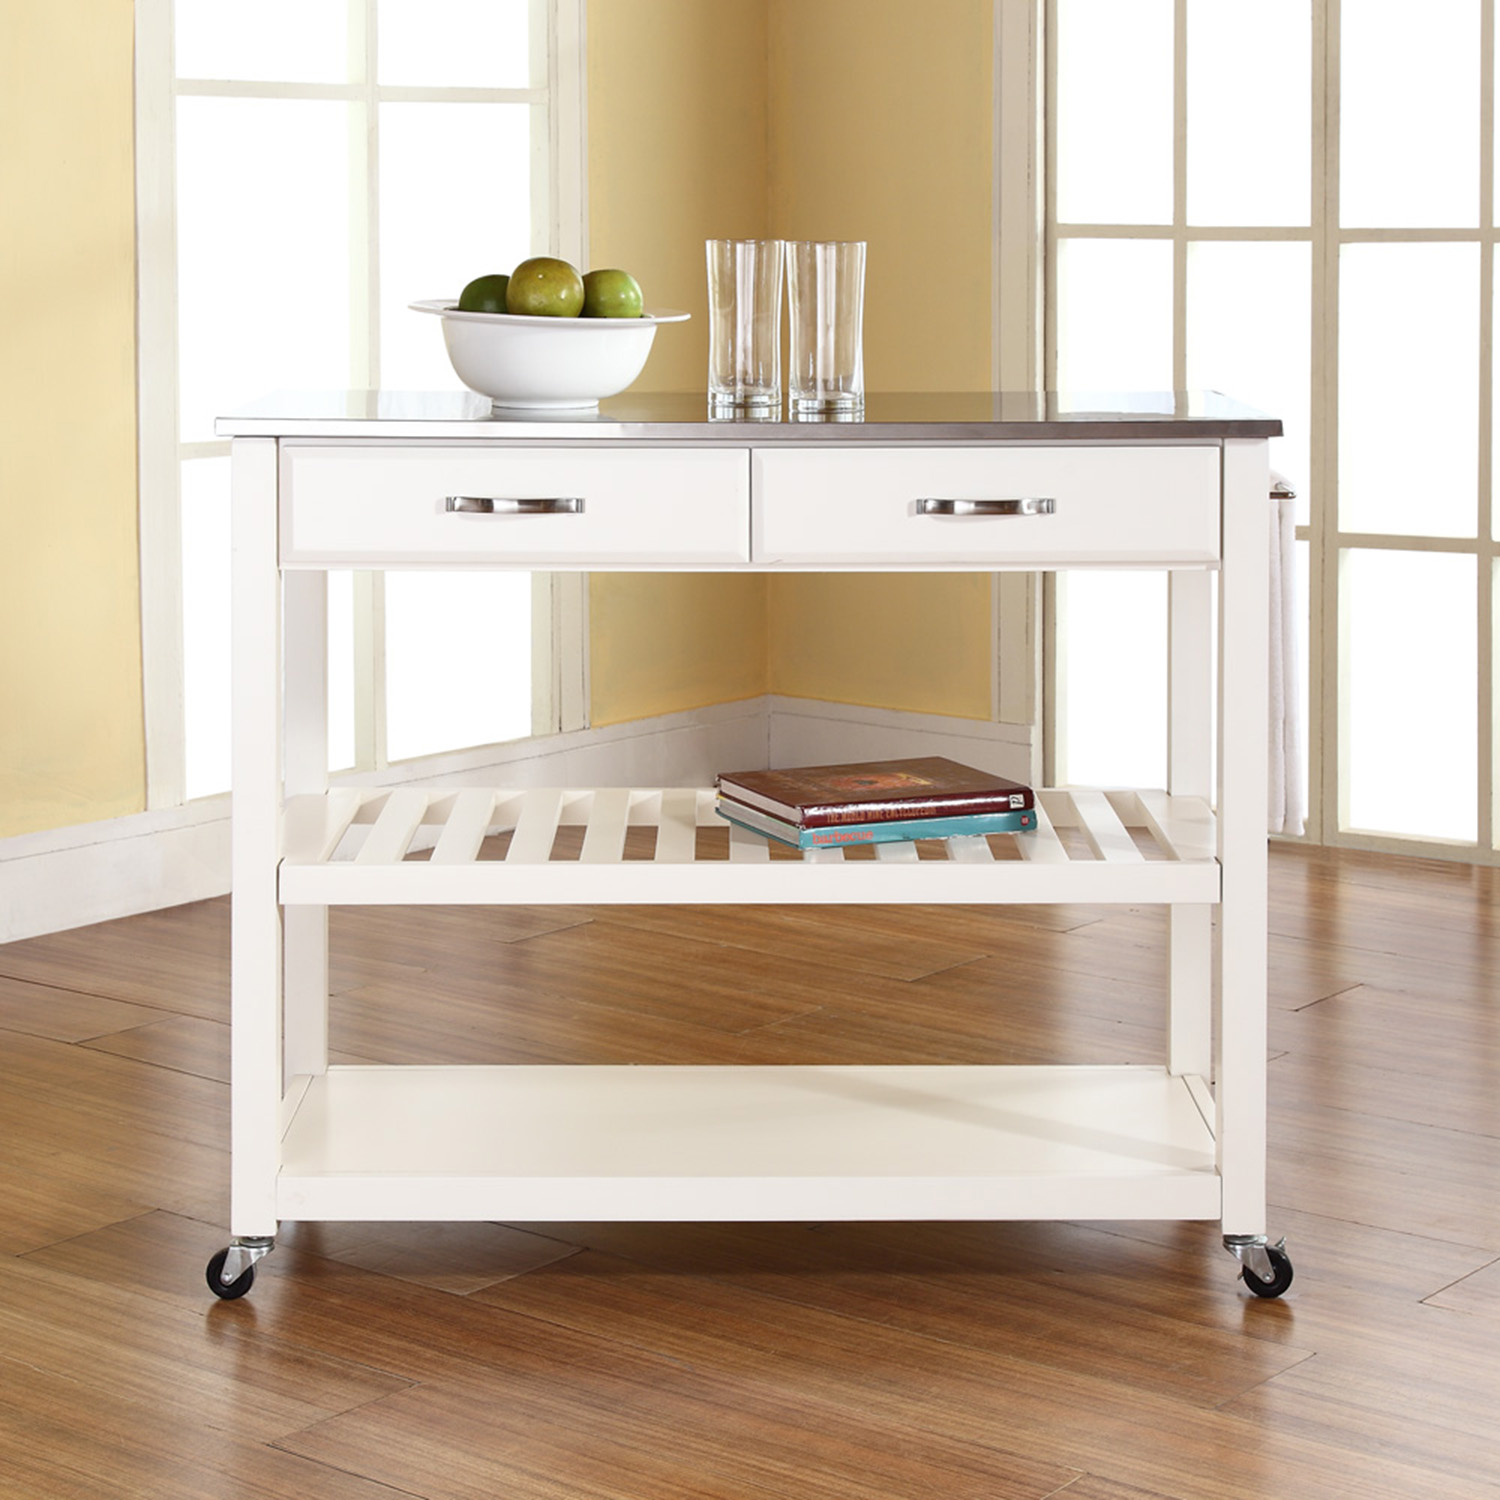 Stainless Steel Top Kitchen Island Cart - Optional Stool Storage, White - CROS-KF30052WH